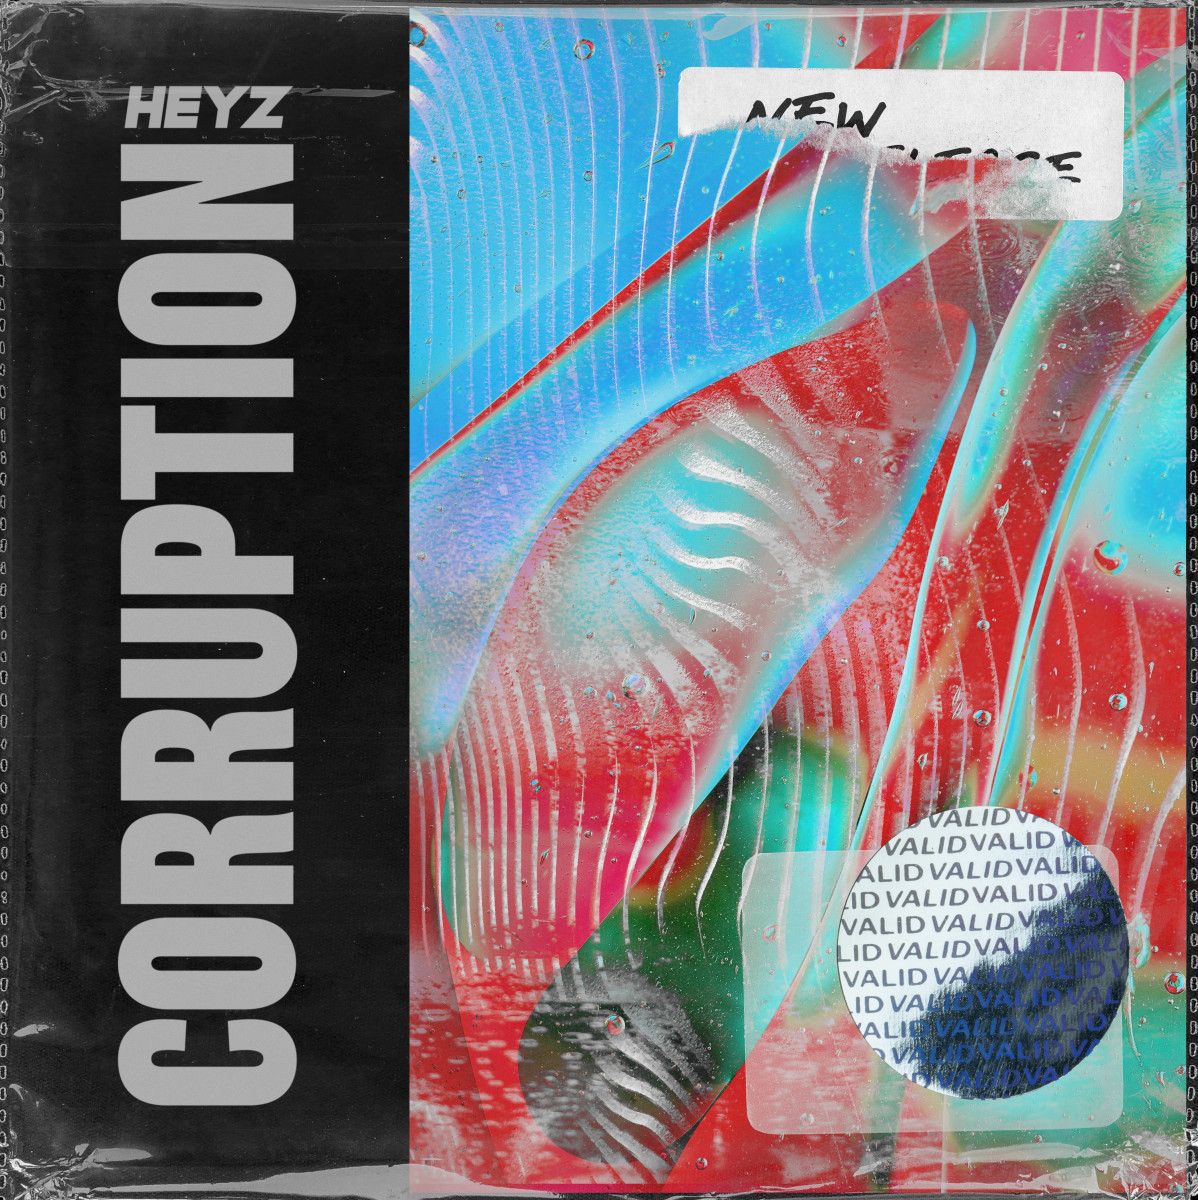 HEYZ Corruption Album Art